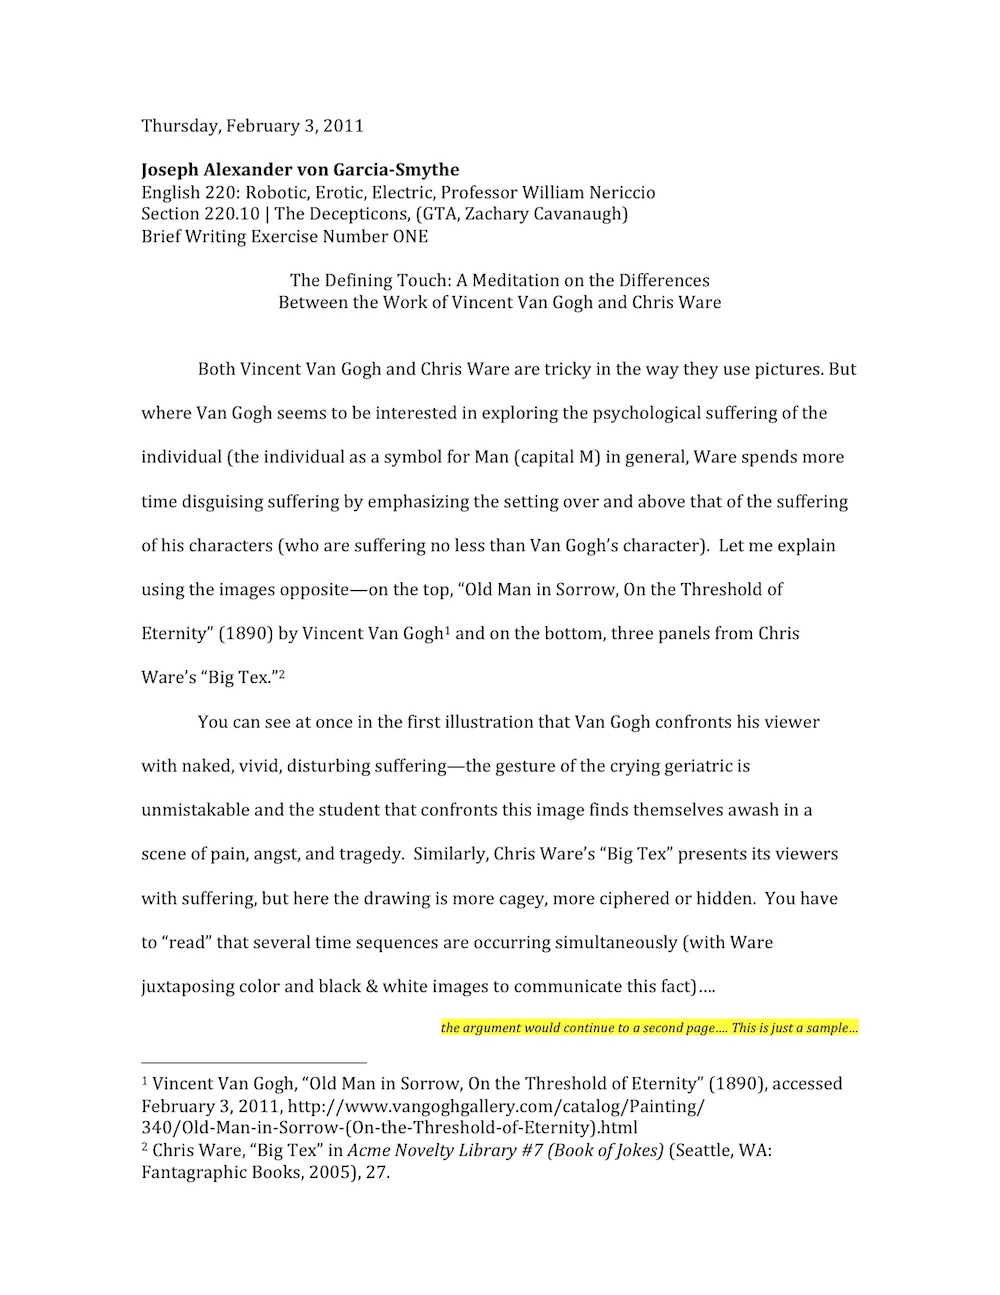 biography essay example biography essay example atsl ip example example biography essay atsl my ip mebiographical essay example templatebiographical essay example